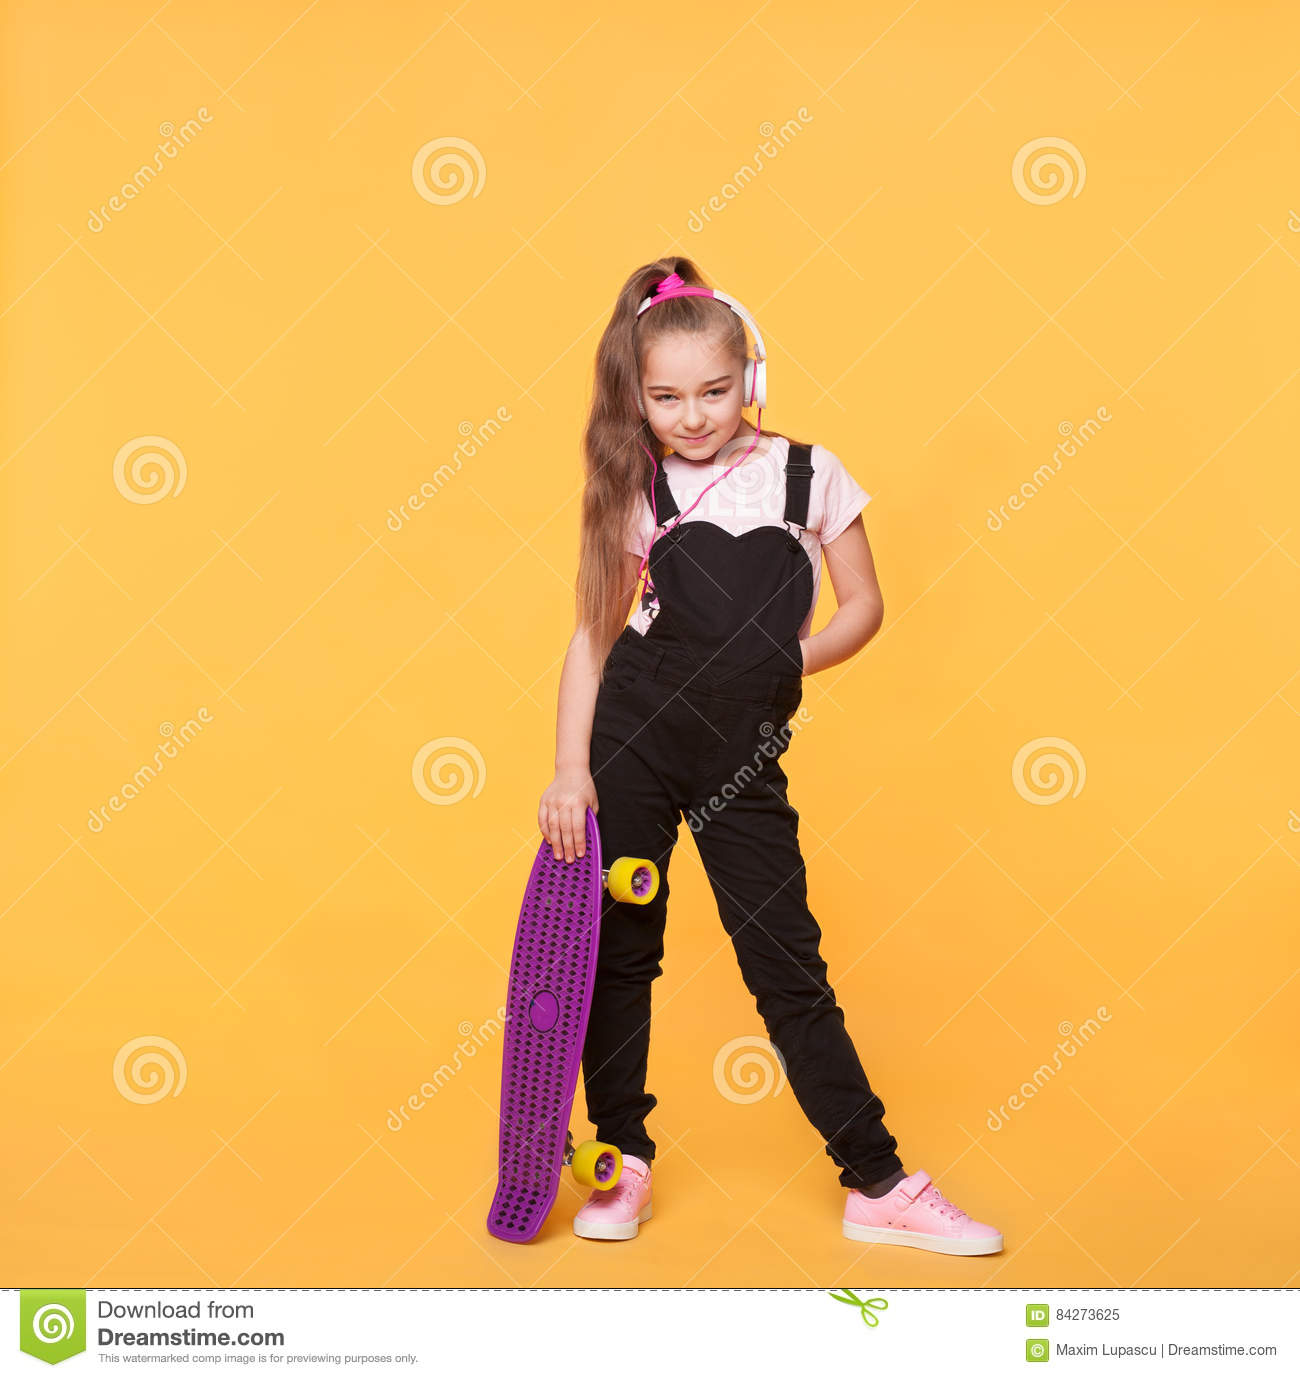 12a8a7a76162 Little school girl posing with skateboard and headphones. In the studio.  Full body size